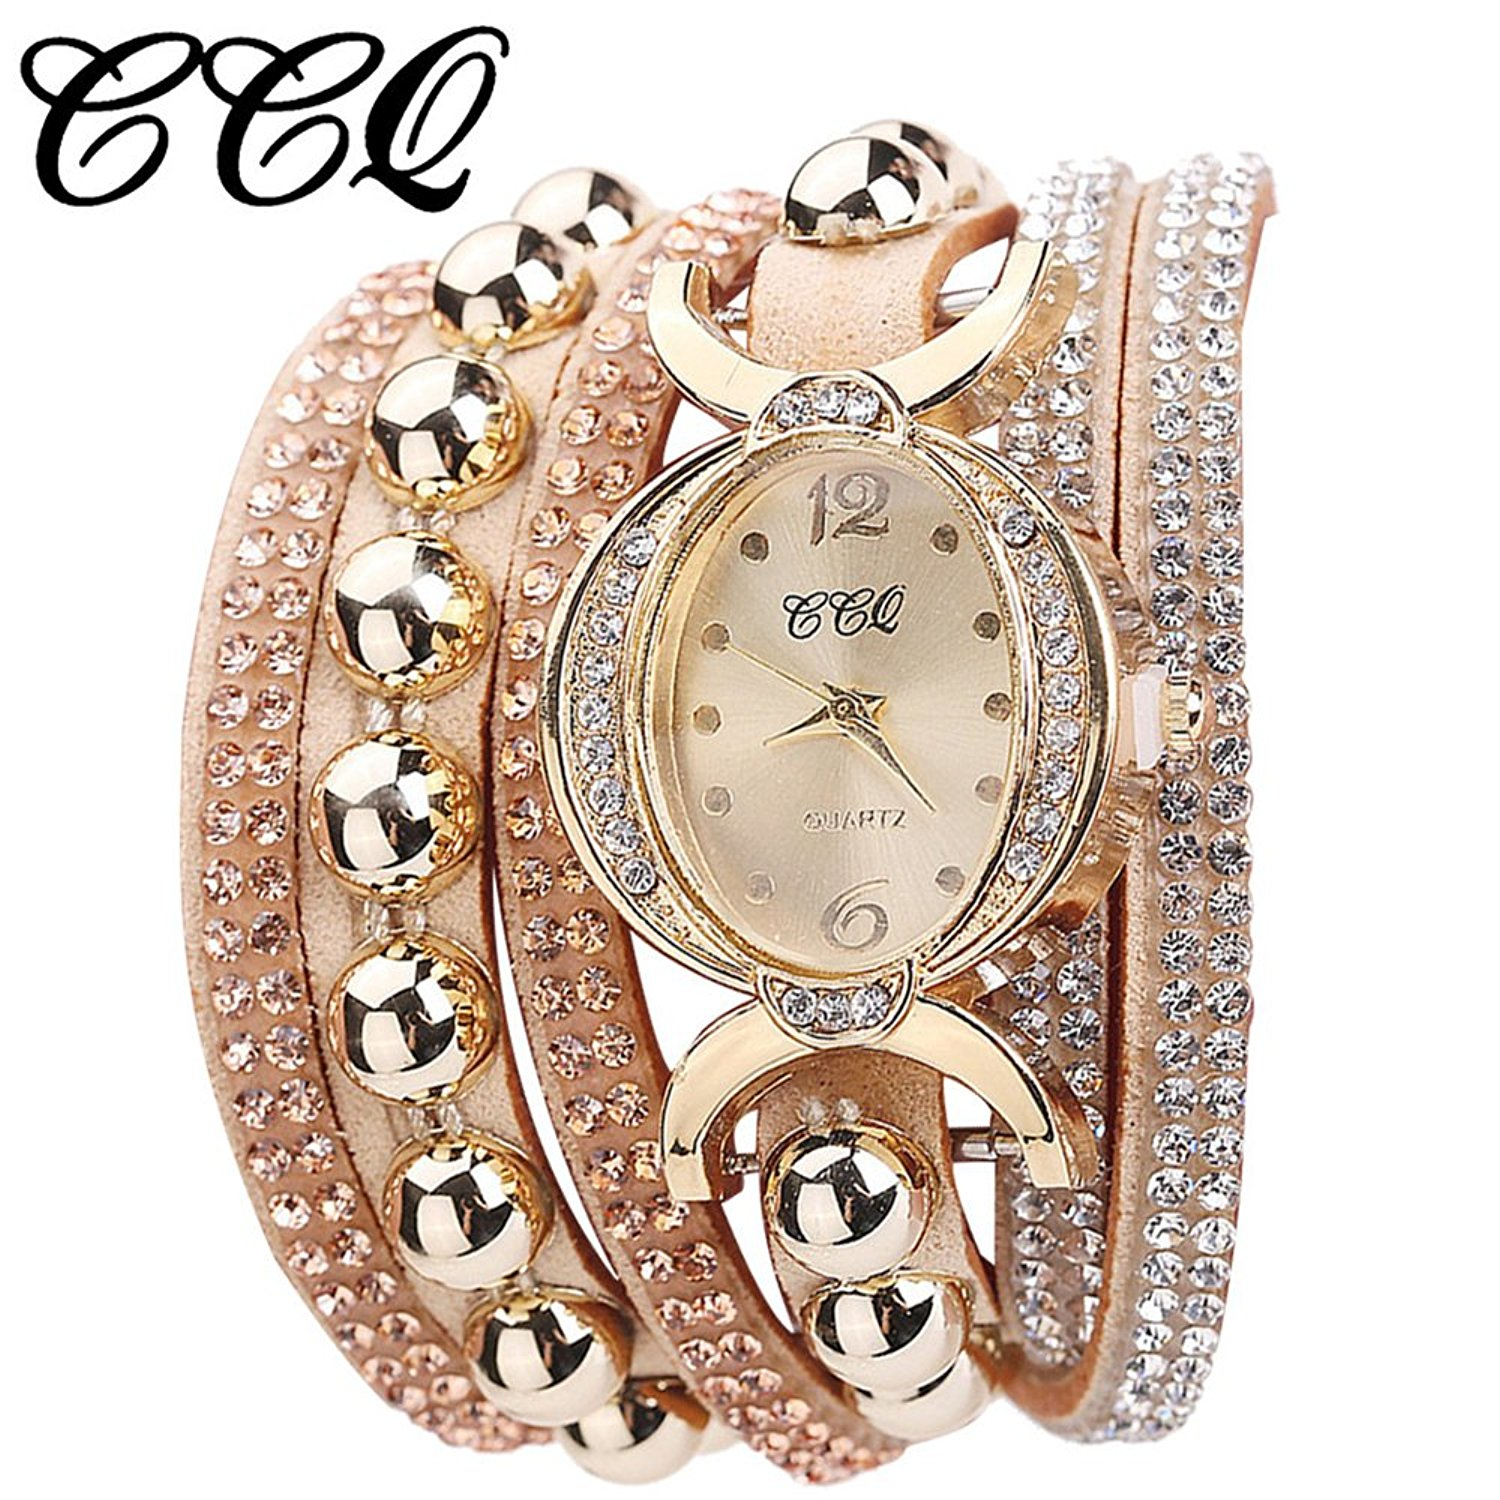 63d8fe8774e9f Get Quotations · Womens Bracelet Watches COOKI Lady s Girl s Fashion  Rhinestone Beaded Charm Layer Quartz Bracelet Watches on Sale